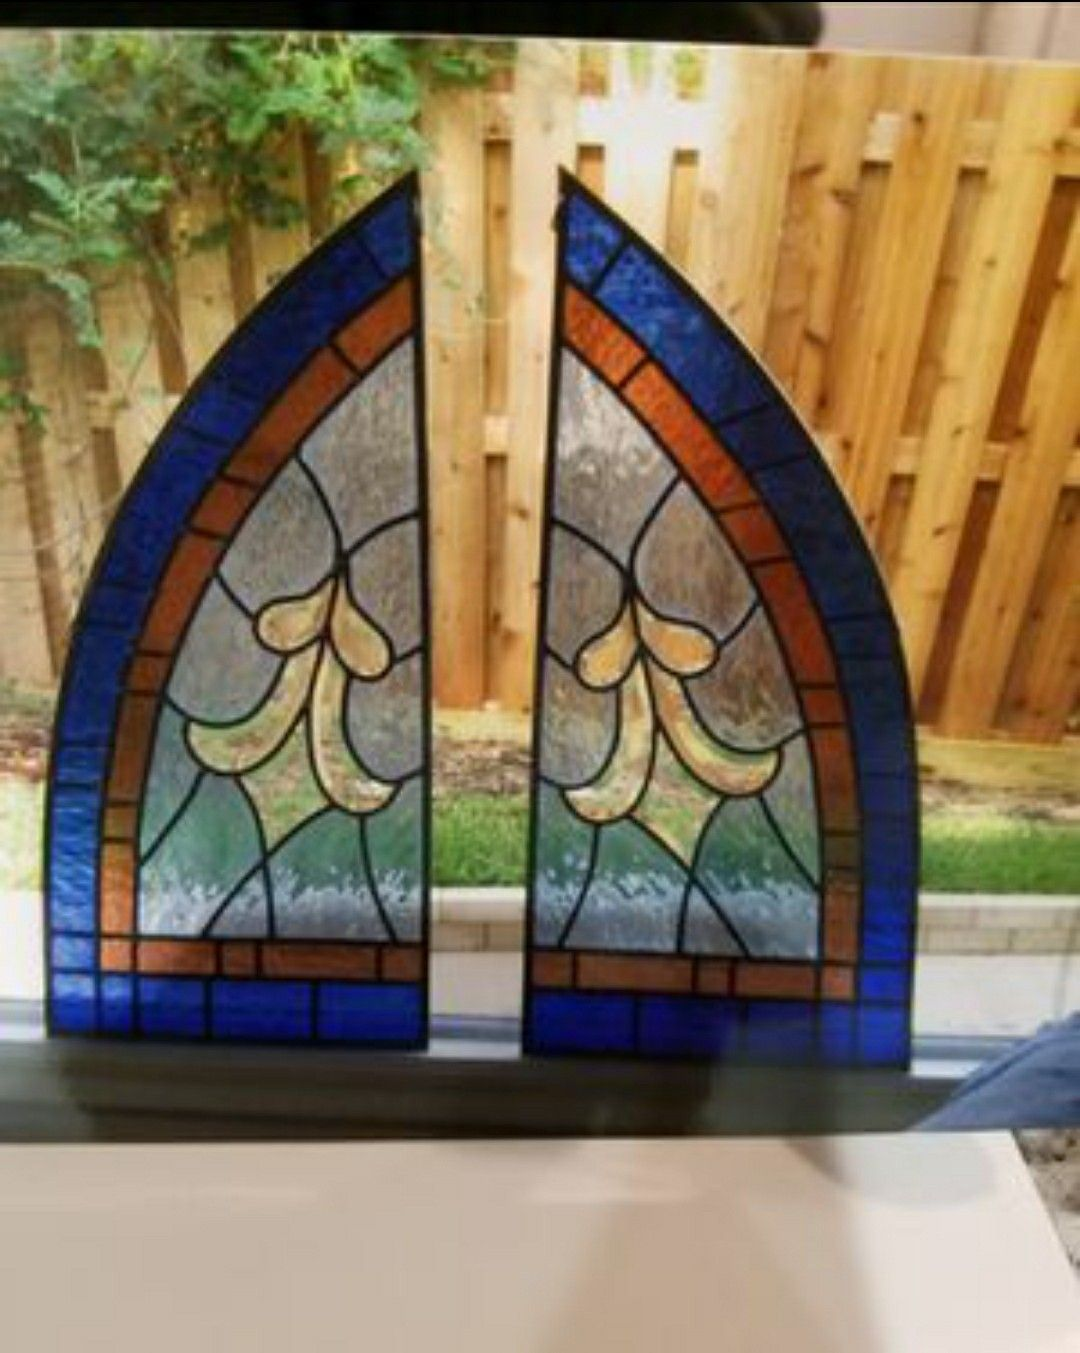 Stained glass (3 pieces)